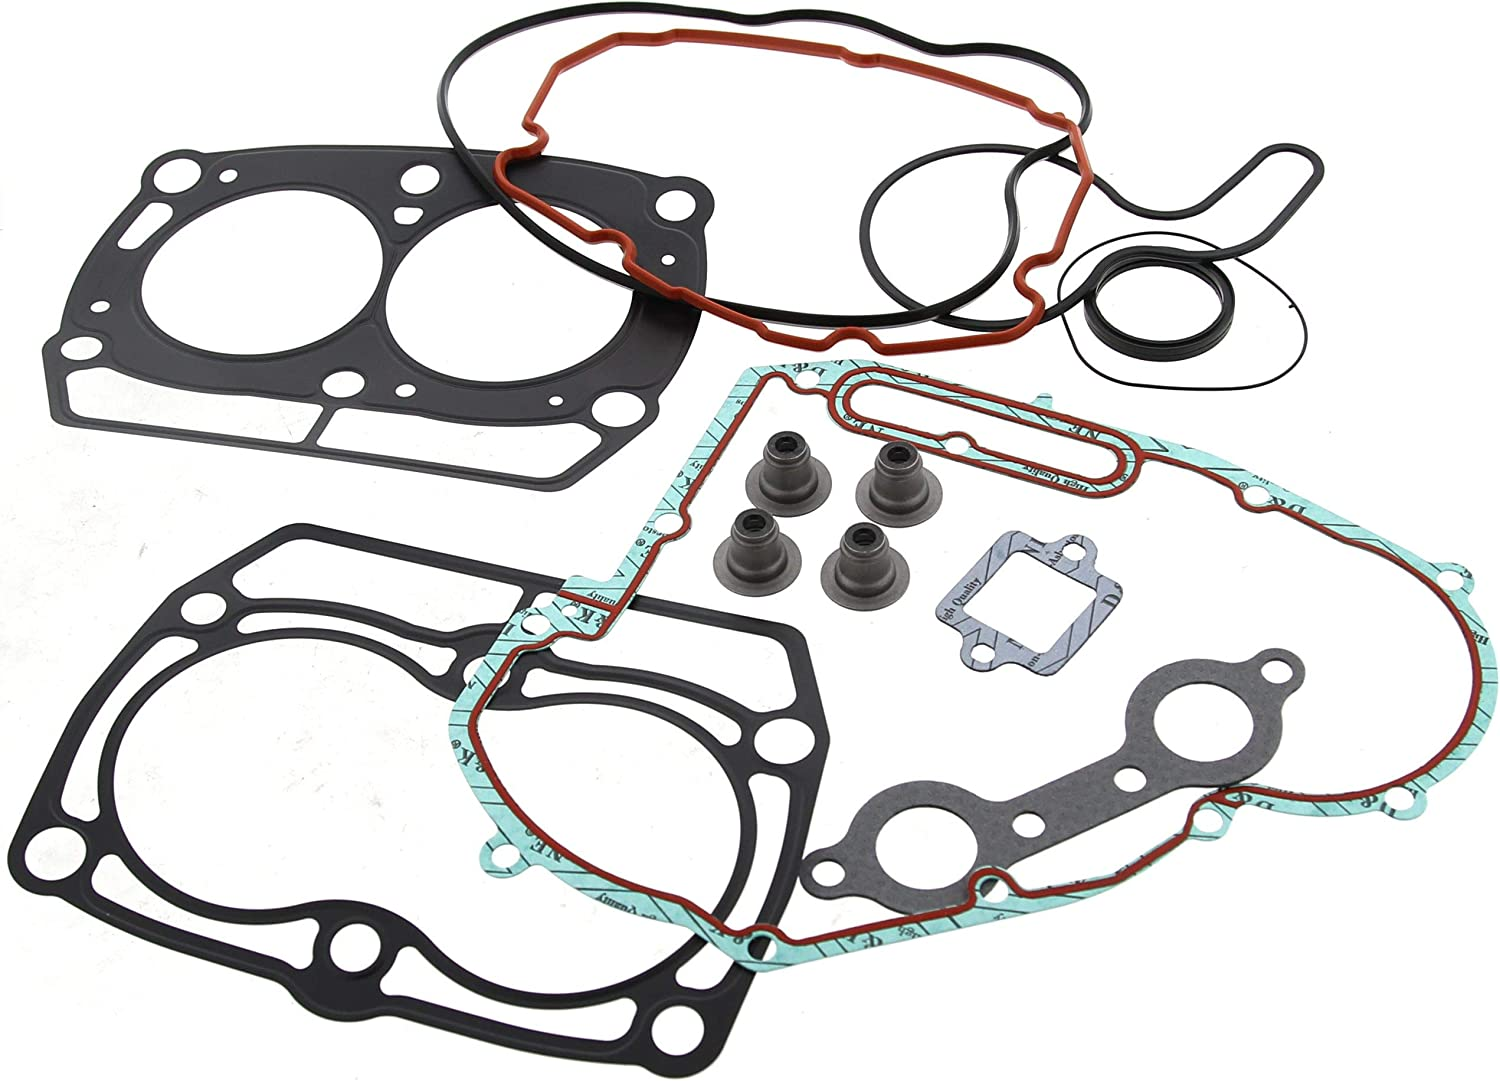 Complete Gasket Kit fits Polaris RZR 800 2008 2009 2010 by Race-Driven